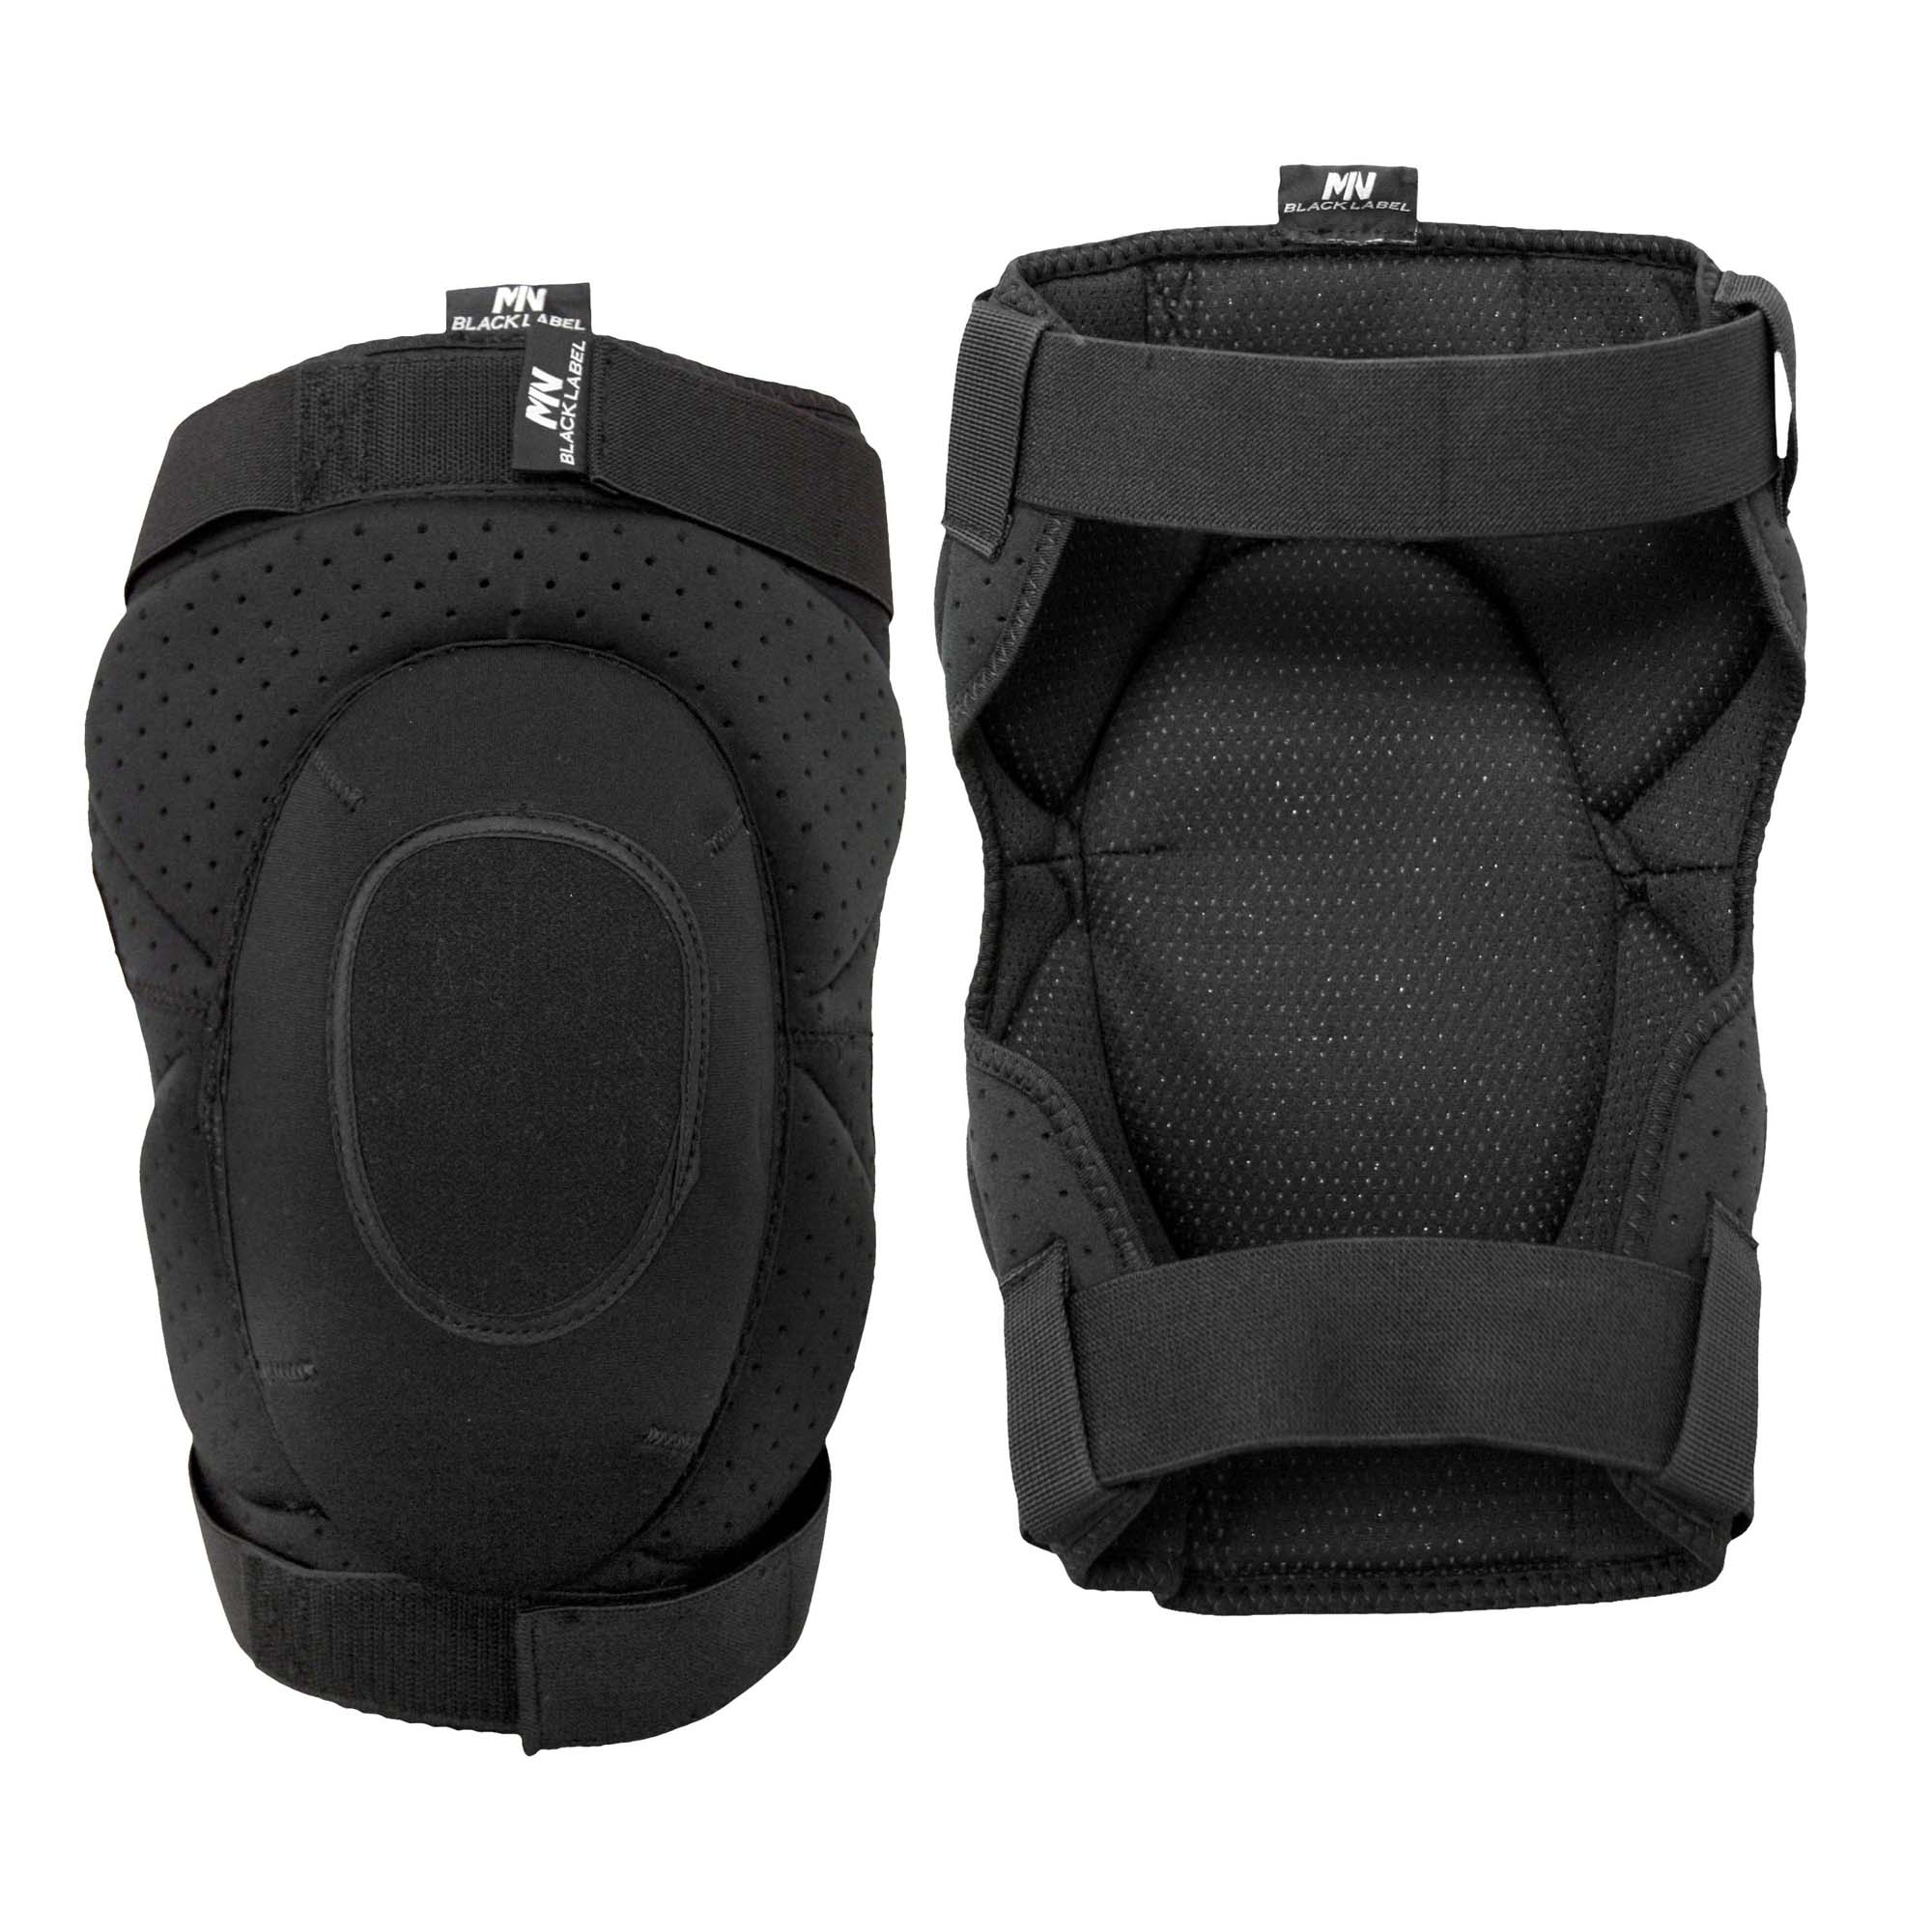 Black Label Ortho Wrap Kneepads 1BL 22410 Black Tools